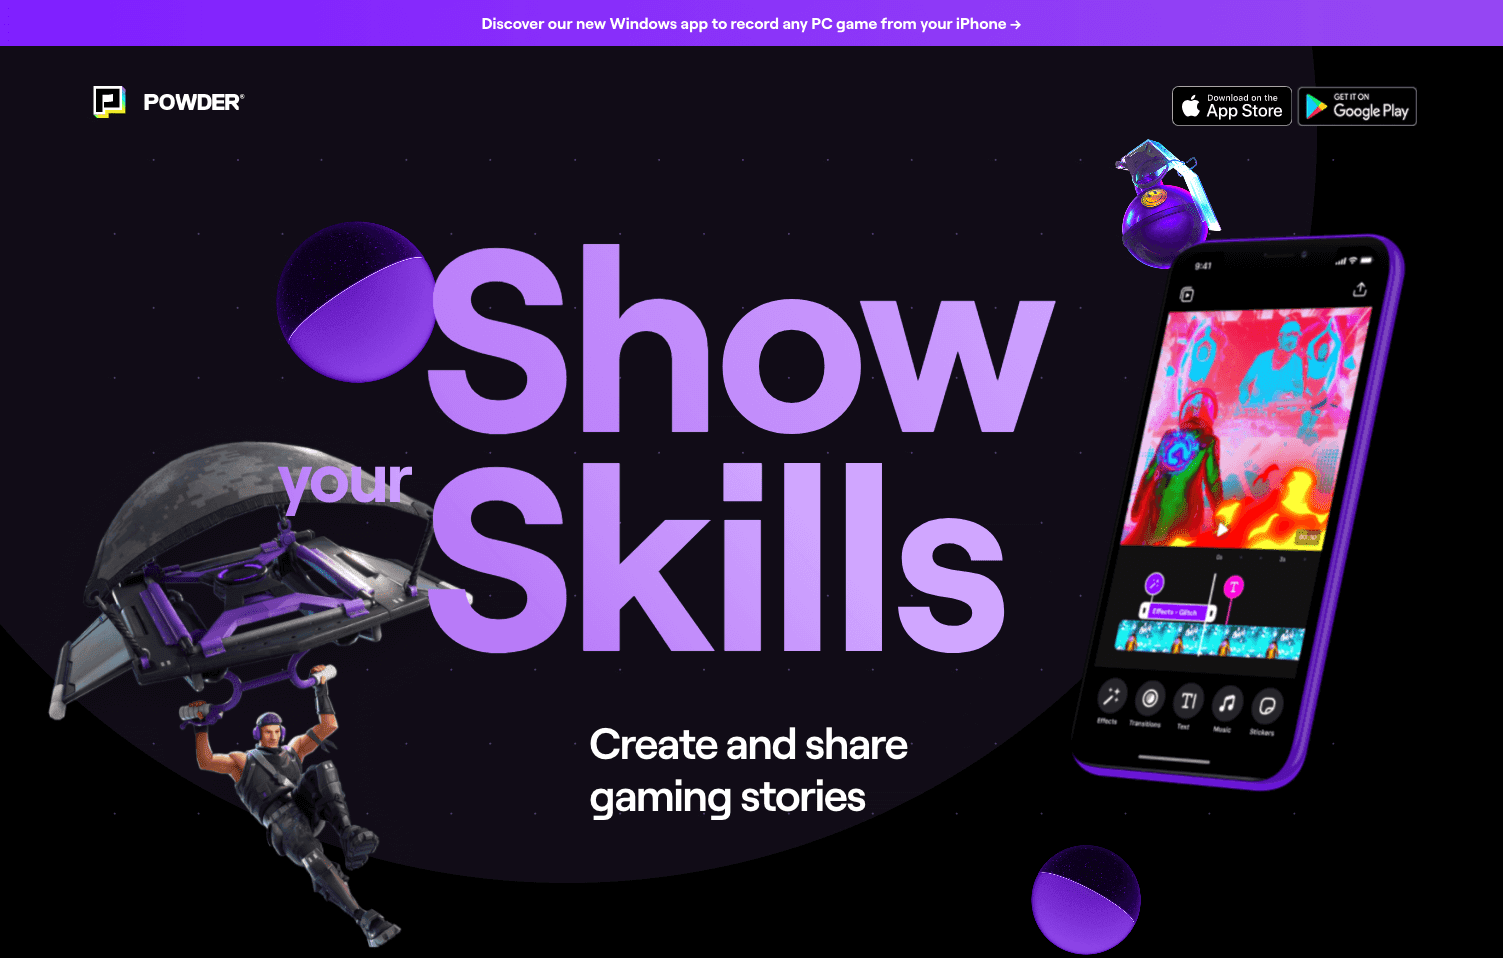 Purple is a secondary color on Powder's website.